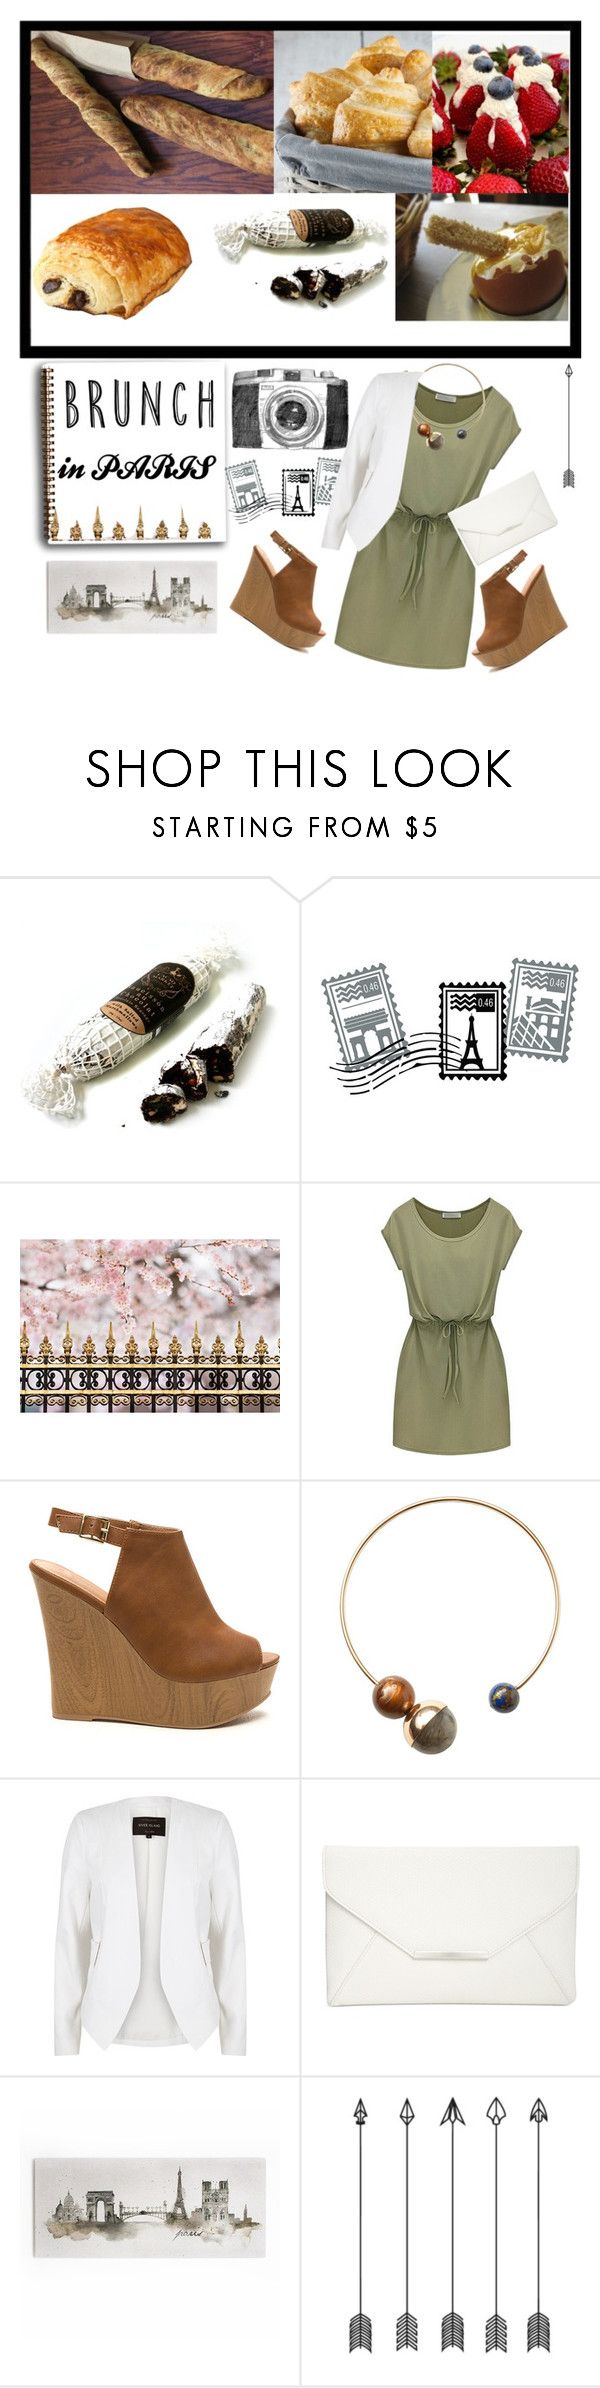 """""""Brunch in Paris"""" by larifarii ❤ liked on Polyvore featuring MarieBelle, Dot & Bo, MANGO, River Island, Style & Co. and MothersDayBrunch"""